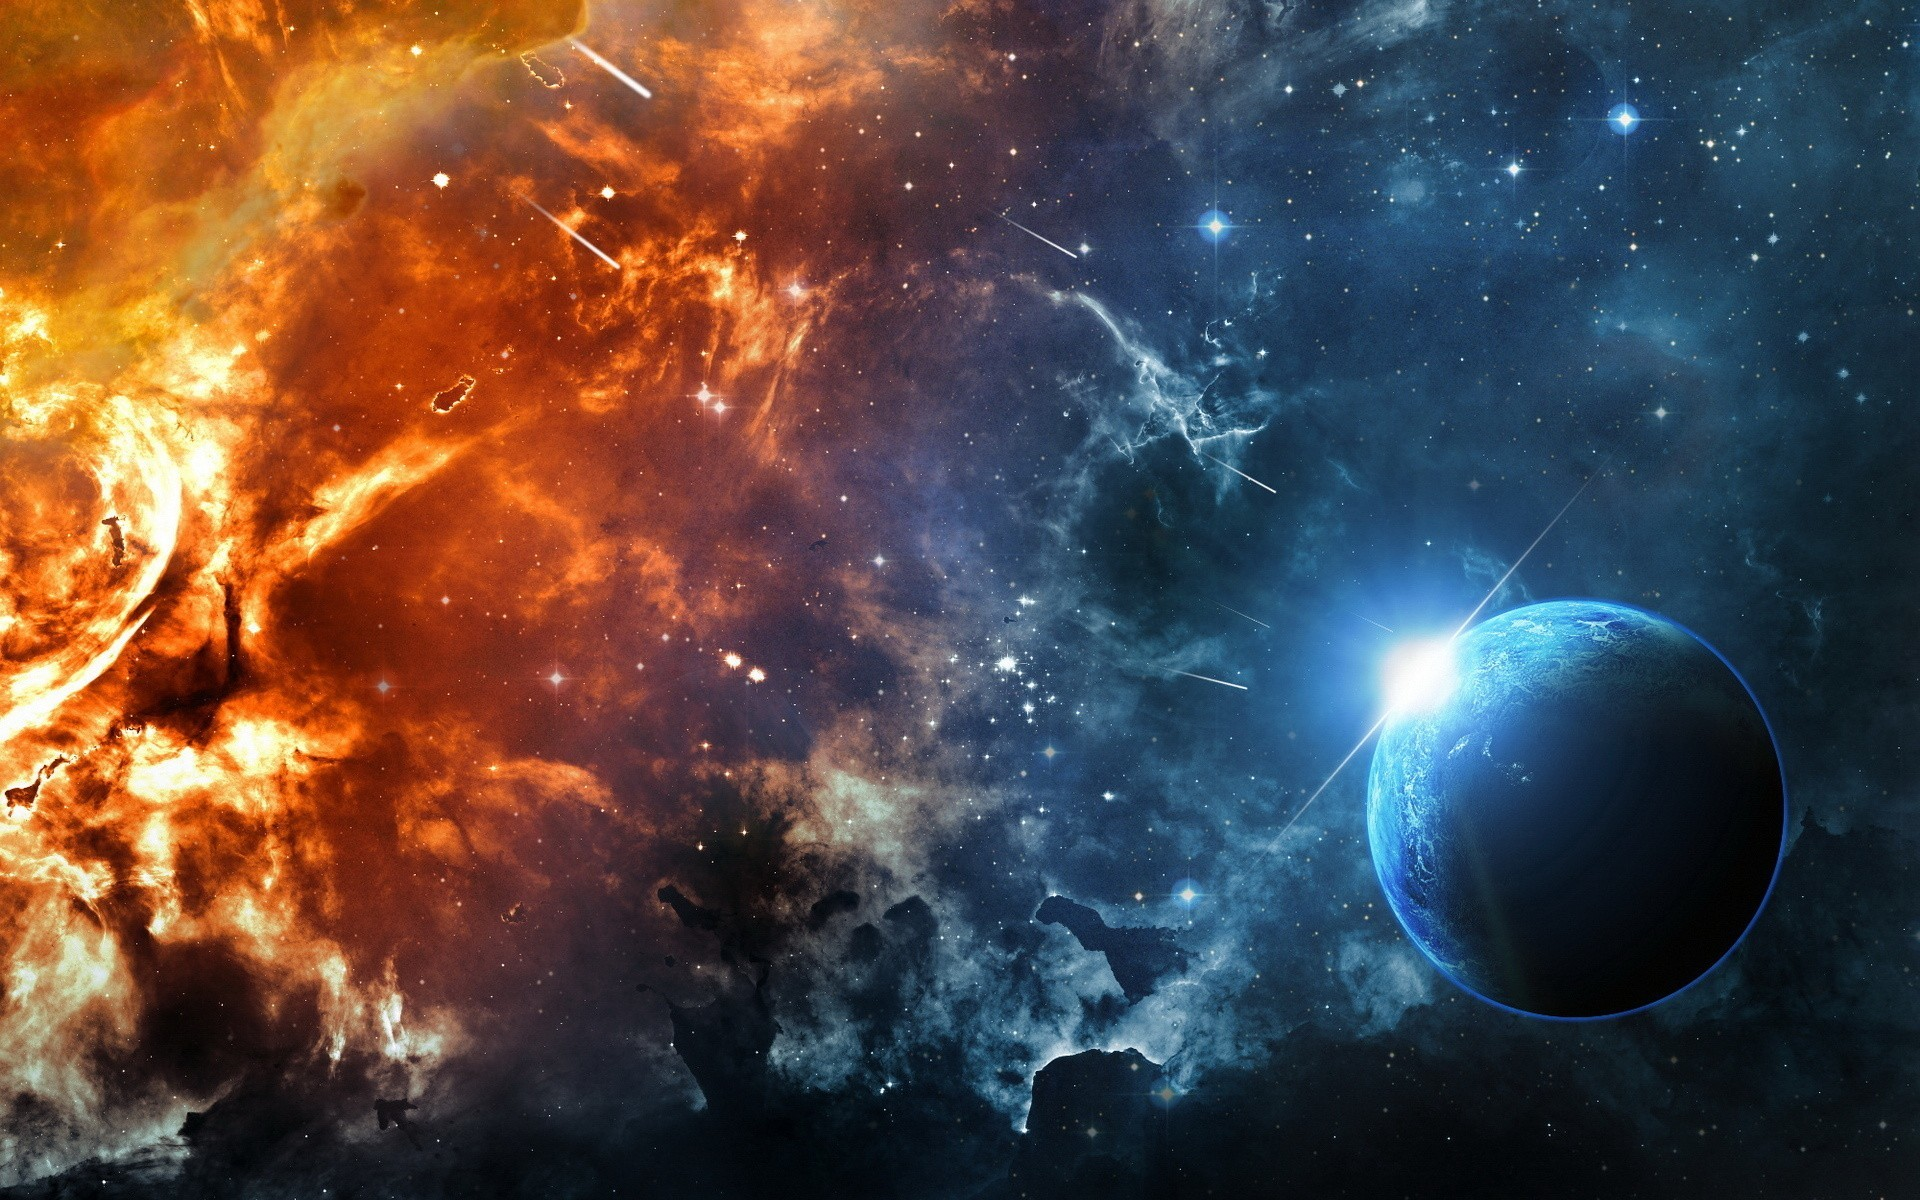 Fire Planet Space Wallpaper Free HD Image